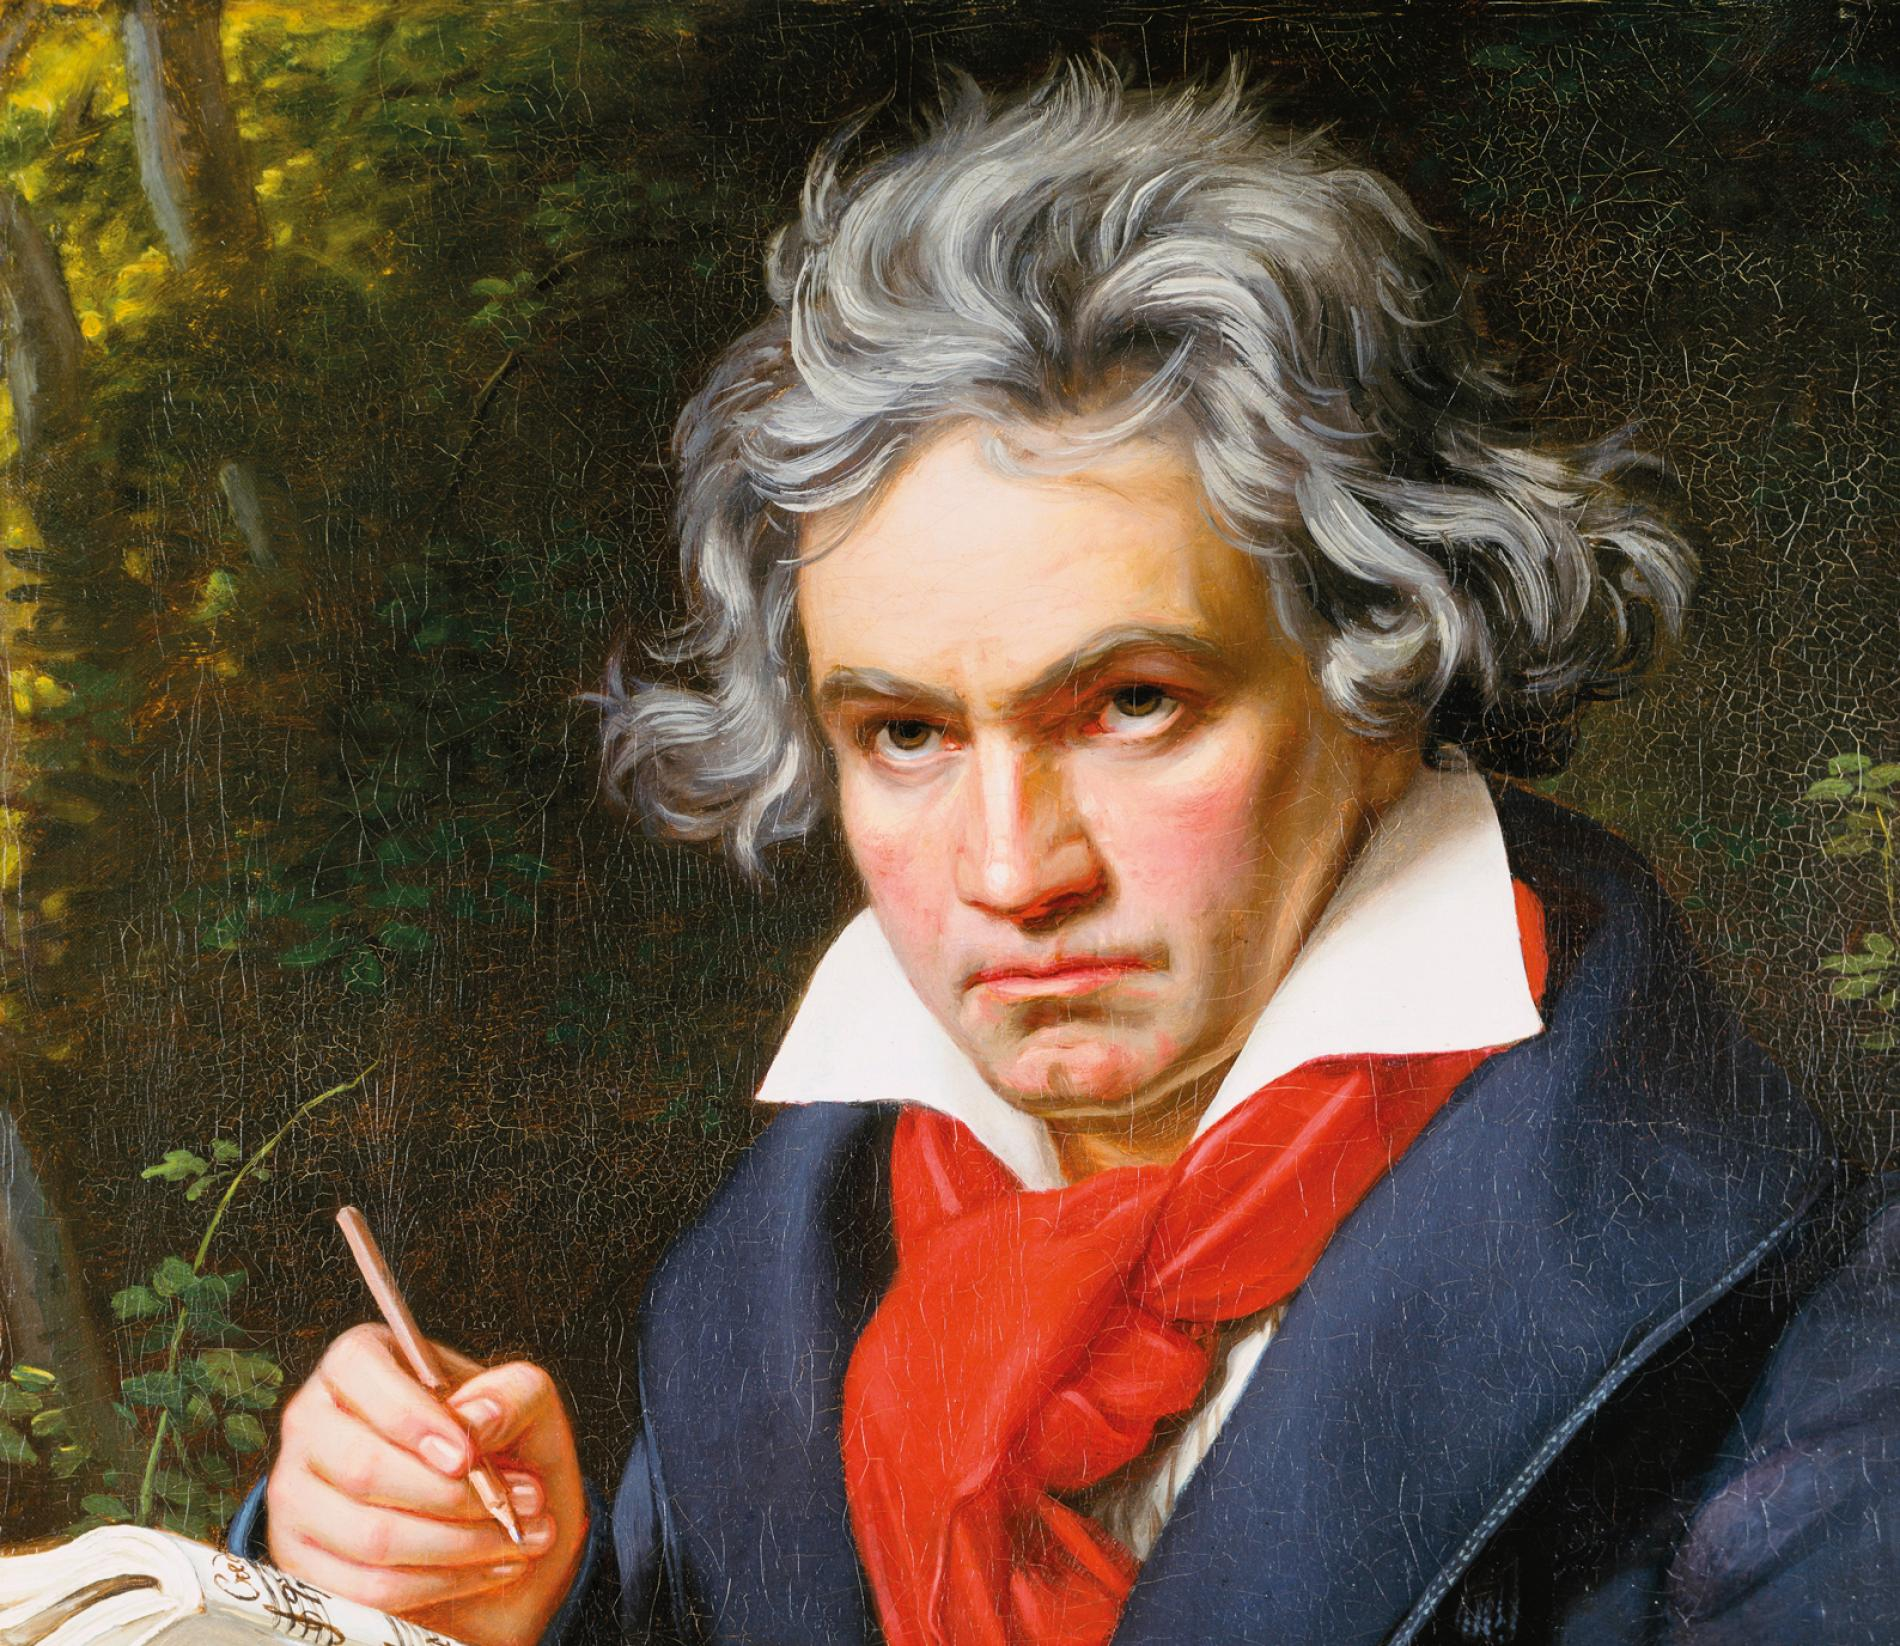 10 Composer Hairstyles for 2019 – Ann Arbor Symphony Orchestra